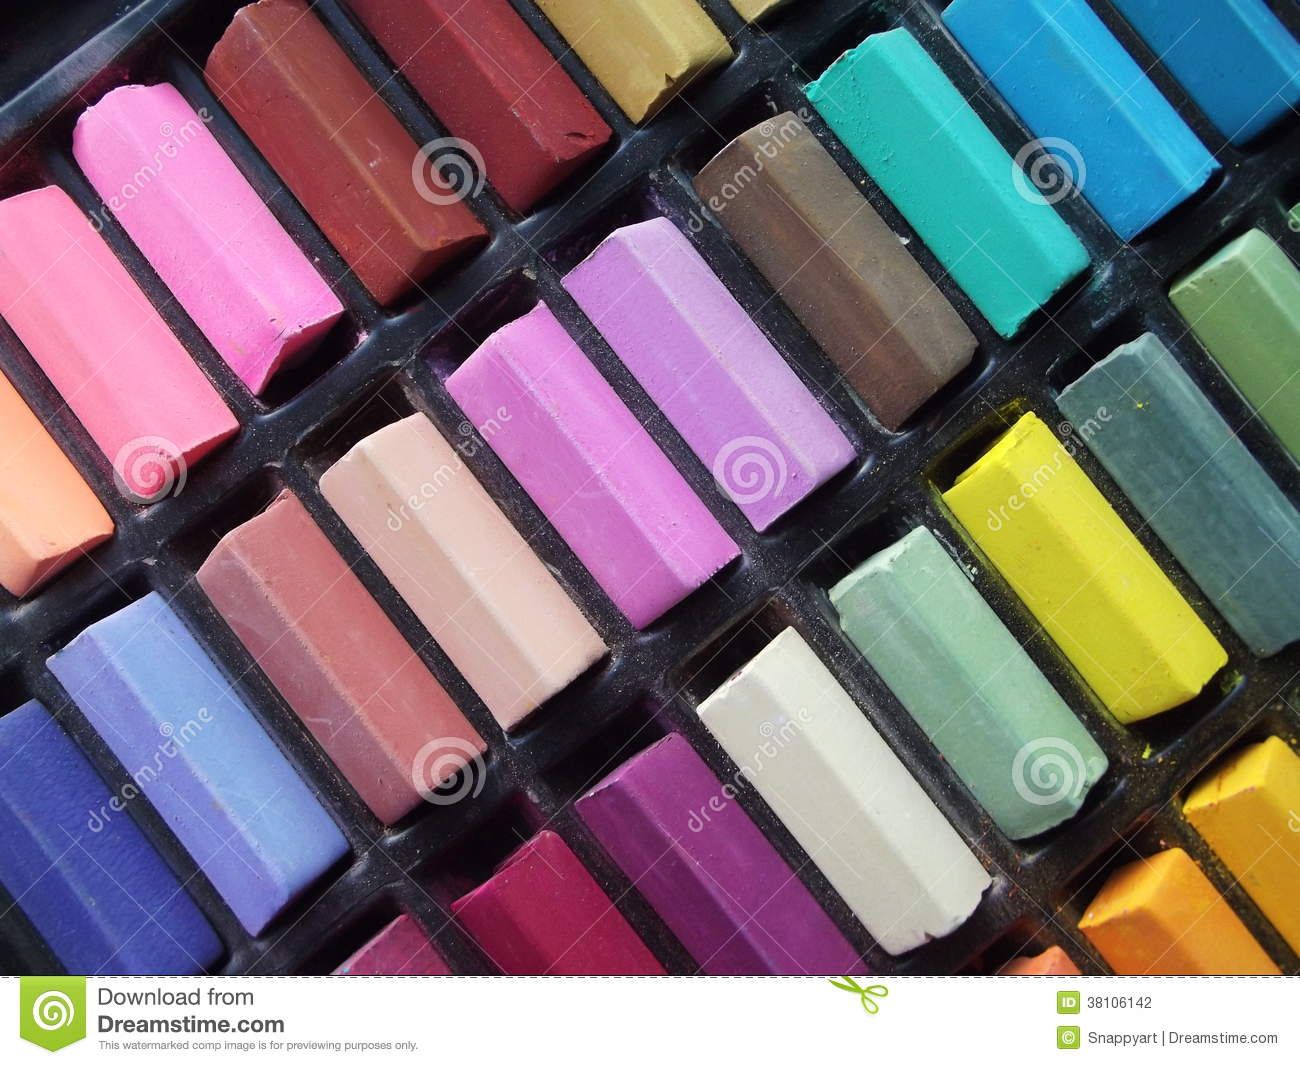 Pinturas Color Pastel Pin Pastel Tiza On Pinterest